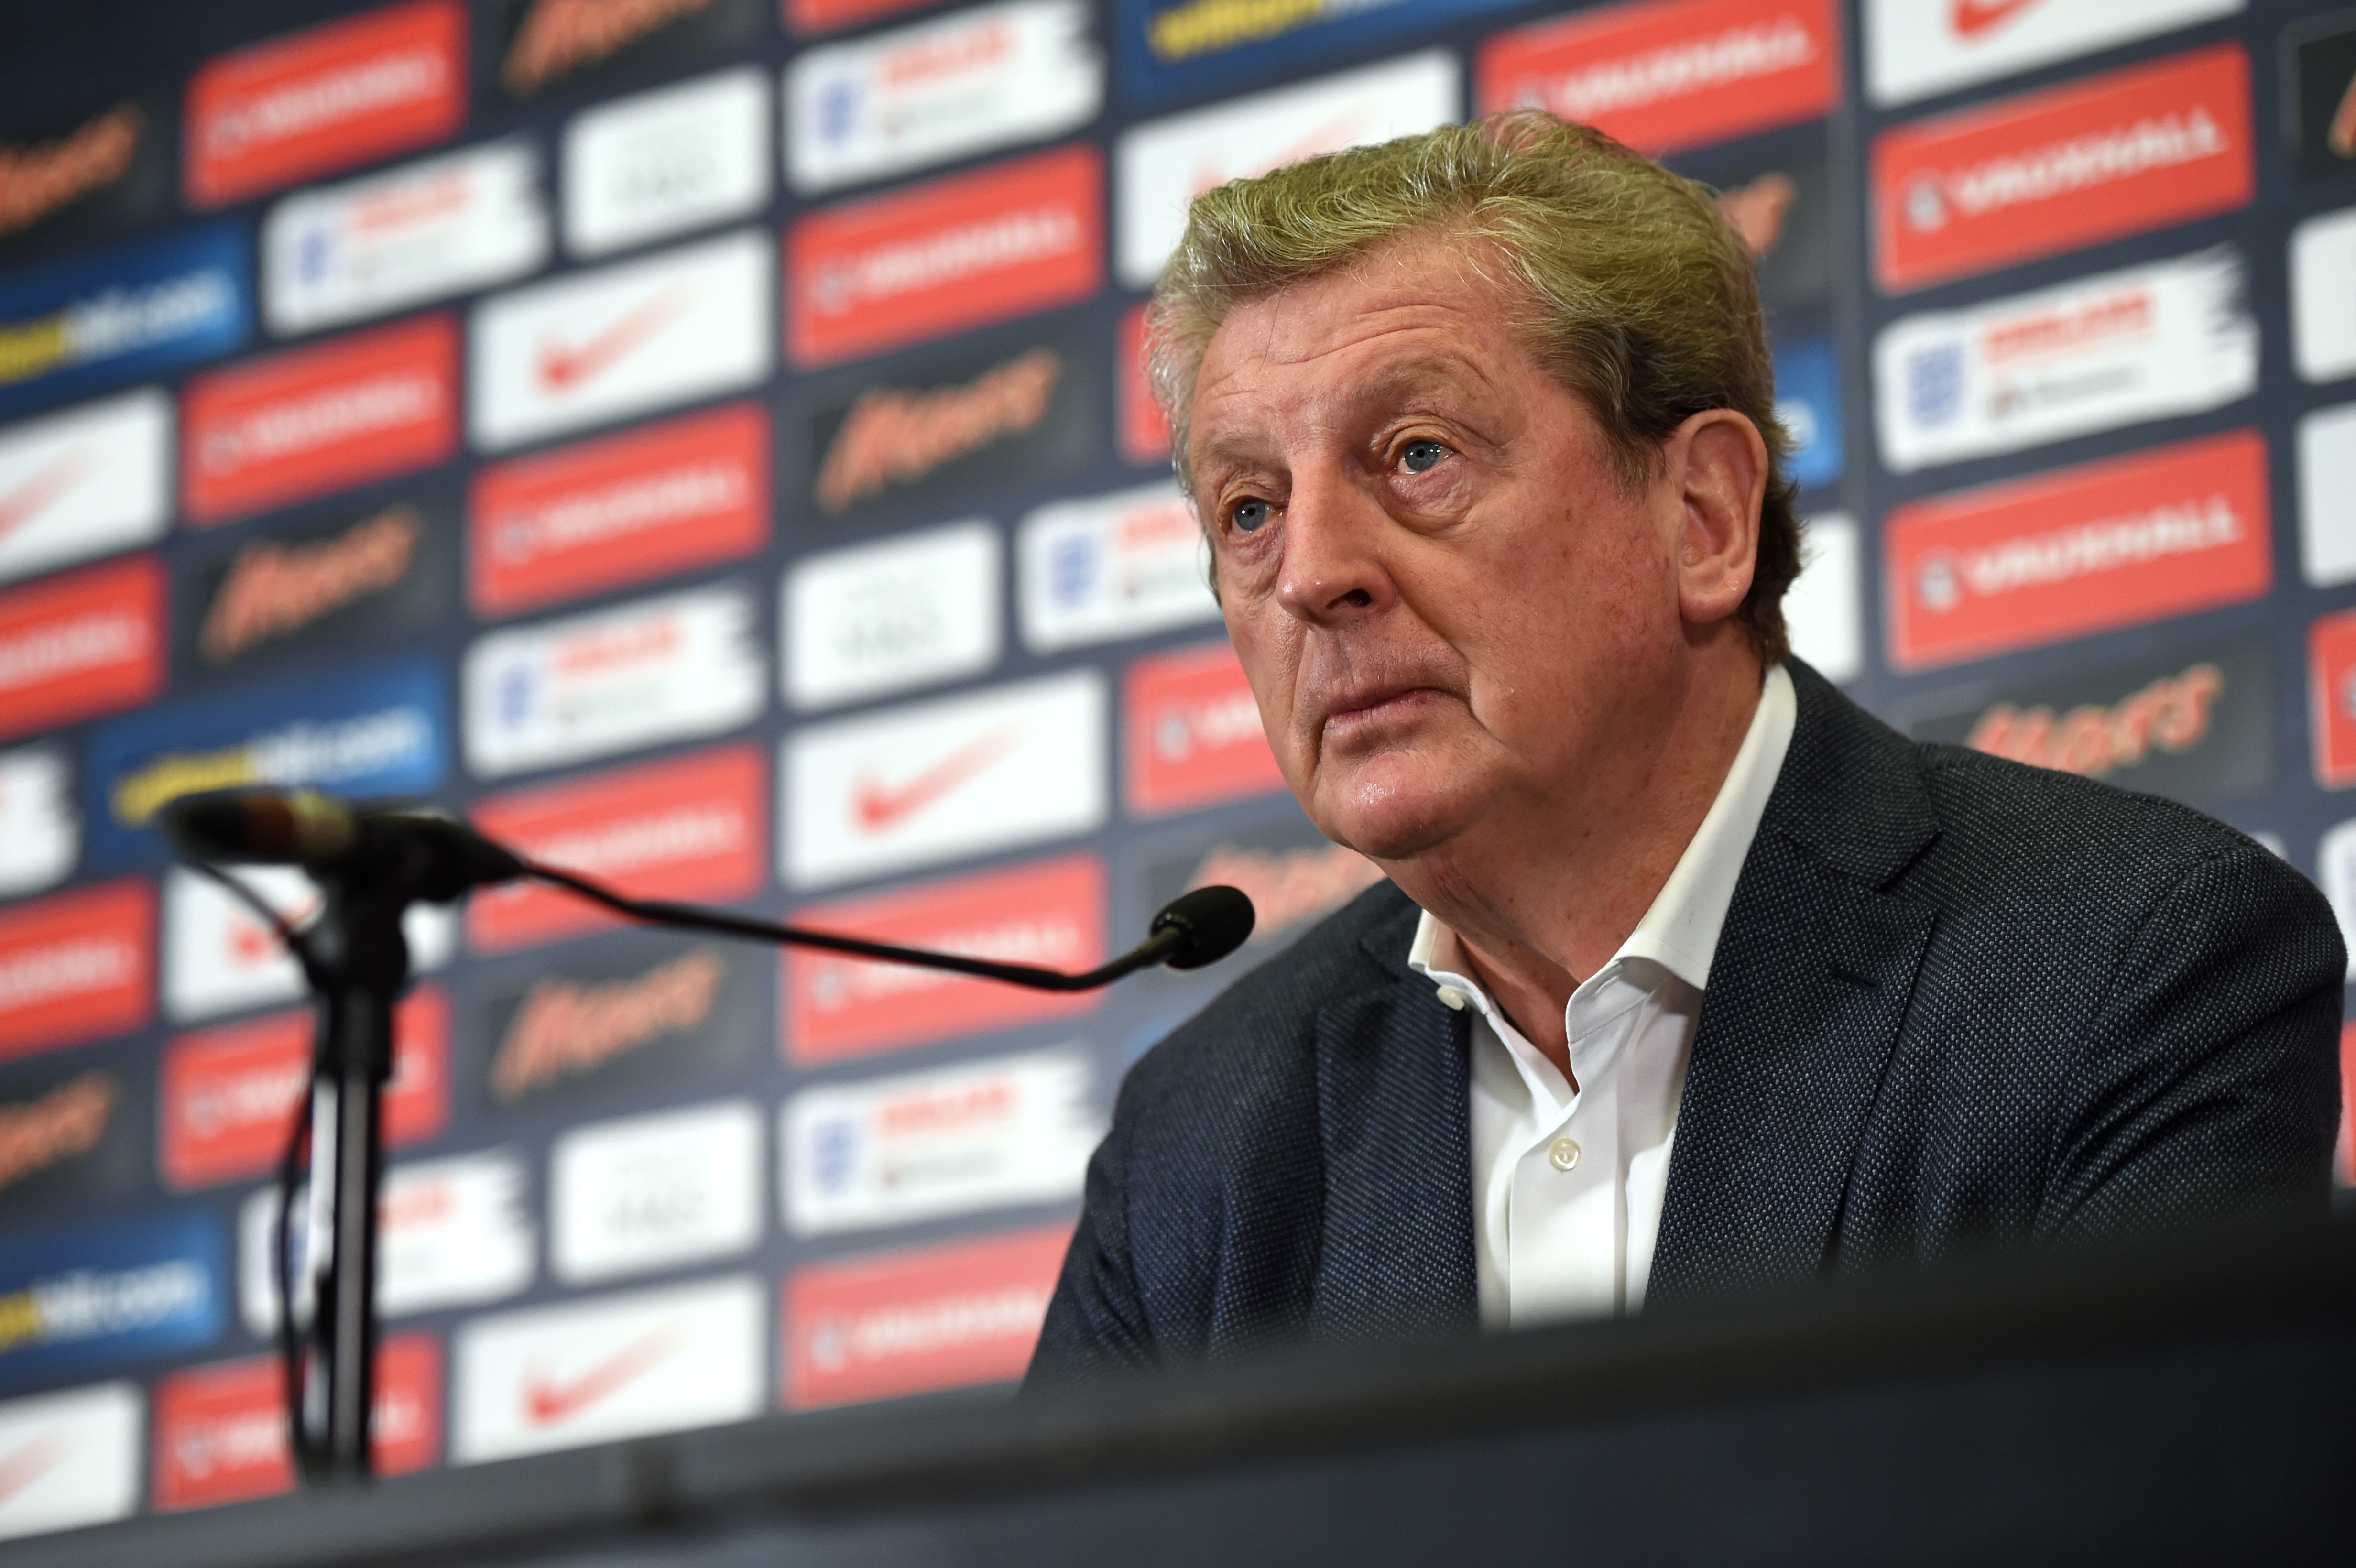 Football - England - Roy Hodgson Press Conference - Wembley Stadium - 1/10/15nEngland manager Roy Hodgson during the Press ConferencenAction Images via Reuters / Tony O'BriennLivepicnEDITORIAL USE ONLY.